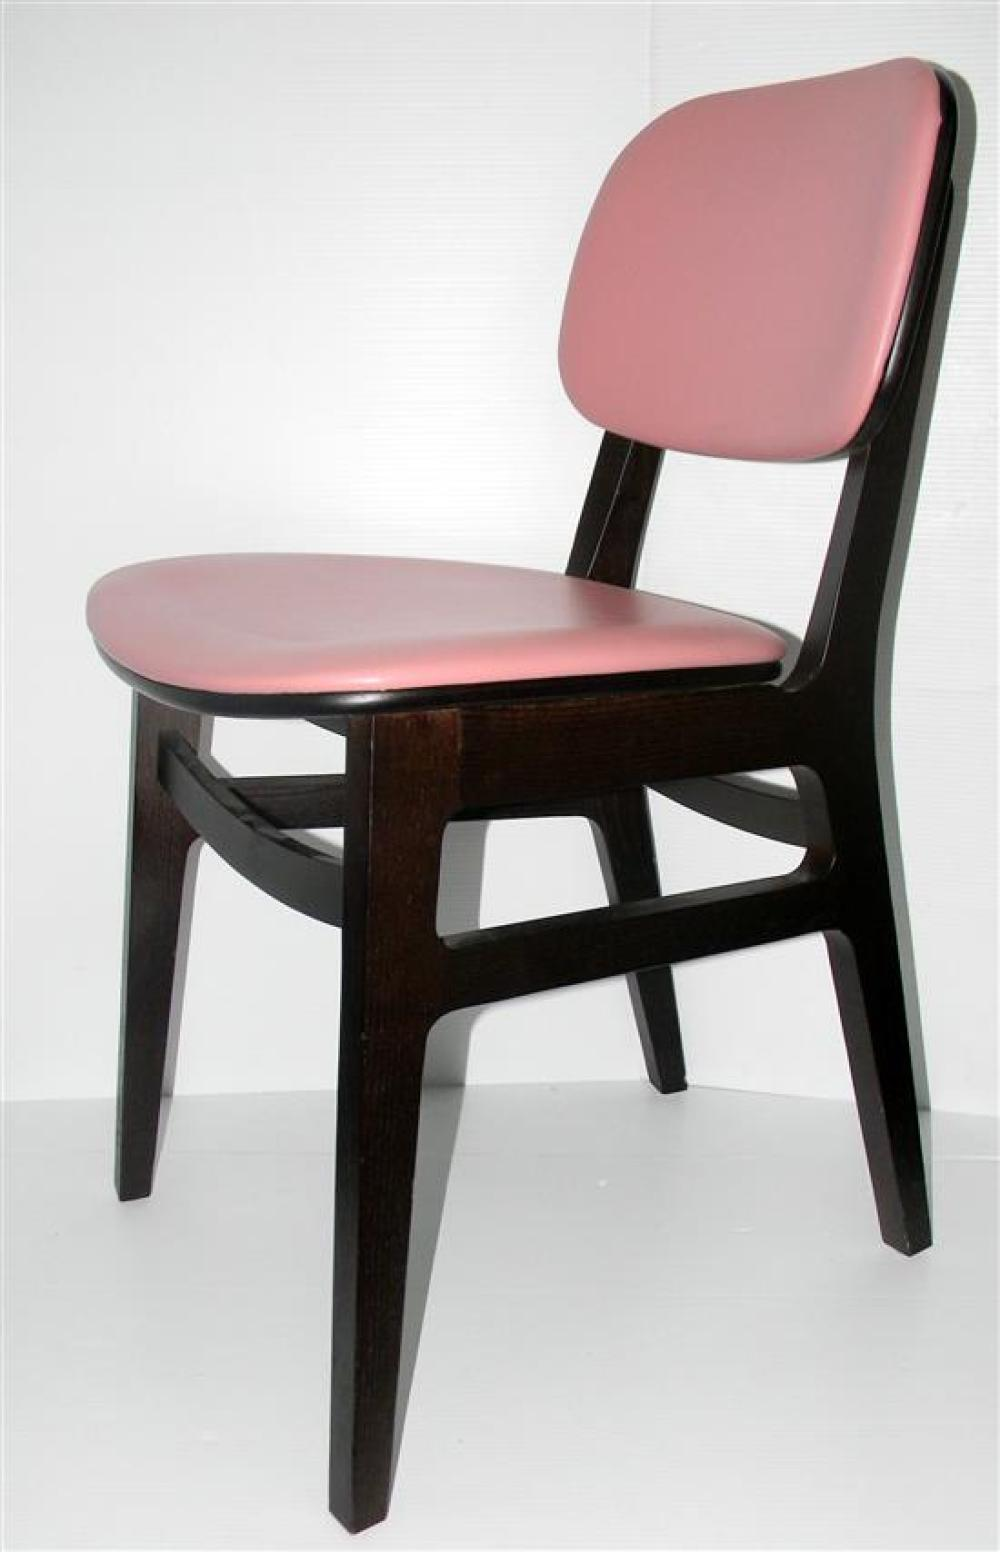 Eight Indentity Furniture XKITI Upholstered Dining chairs (RRP$500 each) in stained solid Eurpoean Ash